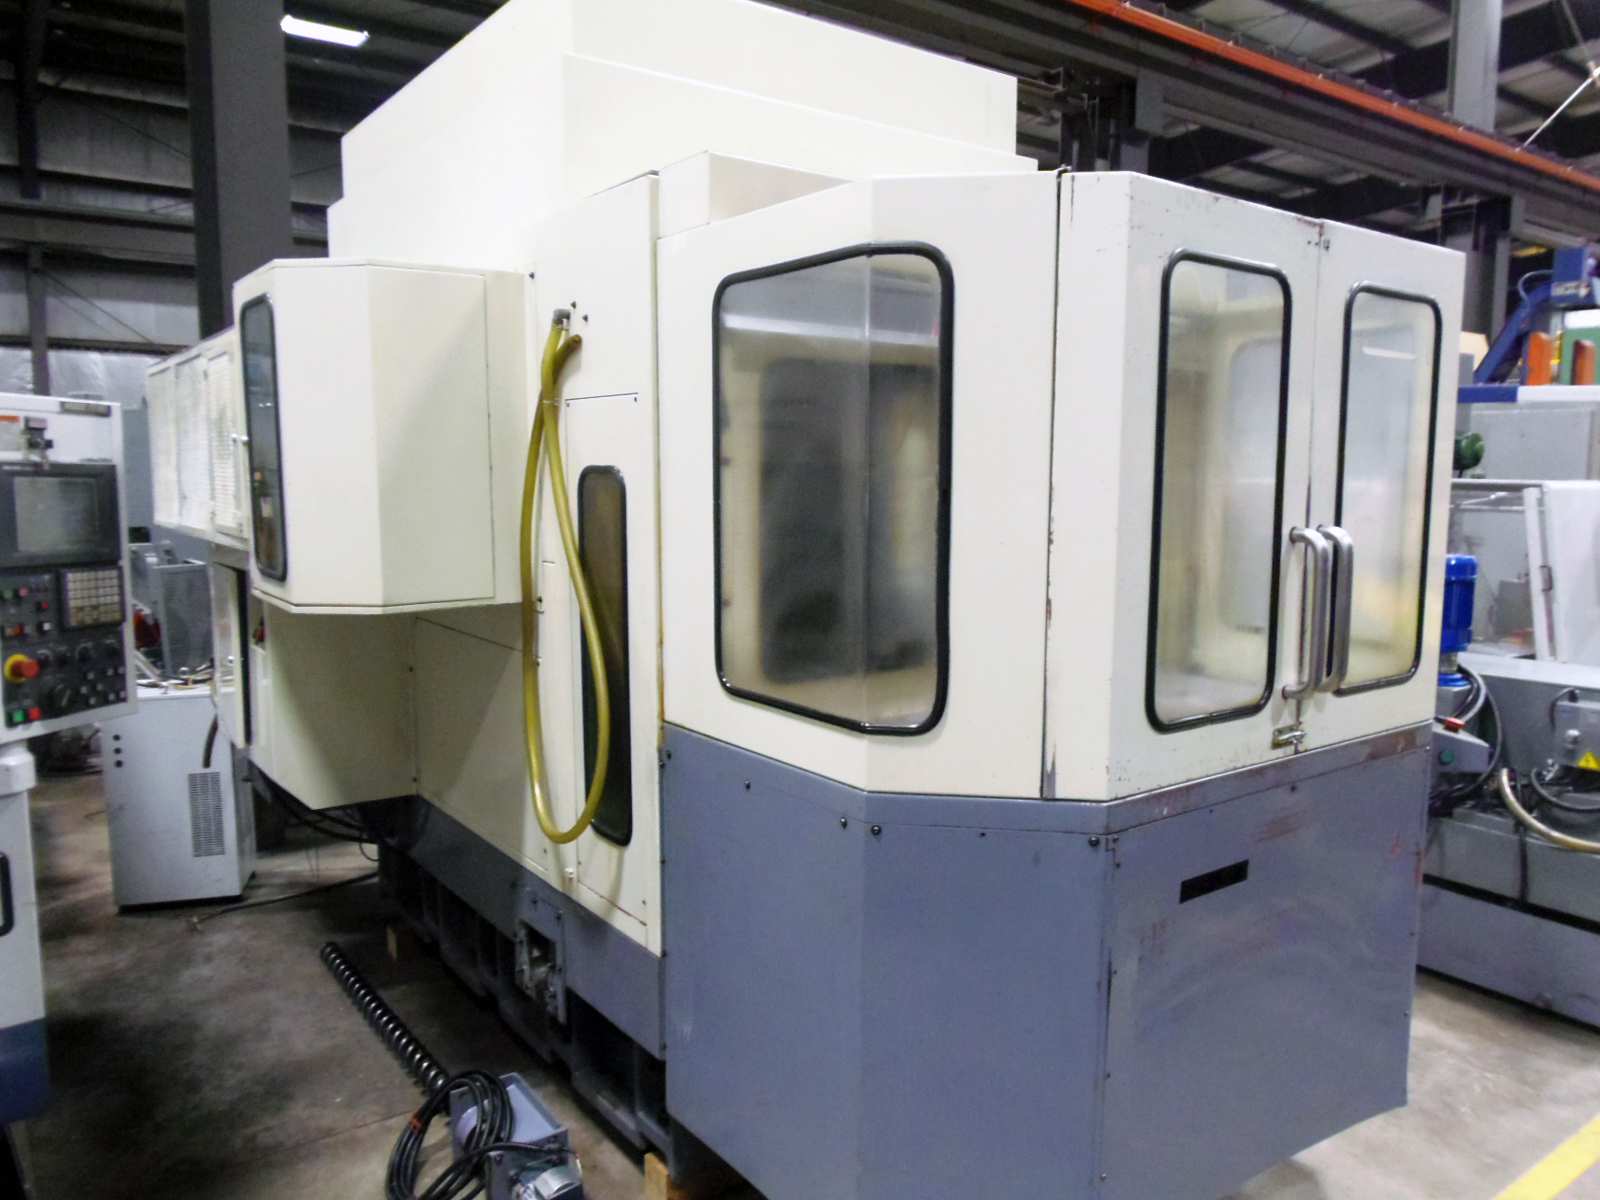 """MIGHTY VIPER HMC-500, 19.7"""" PALLETS, 2004, FANUC 18M CONTROL, 4TH AXIS ROTARY, 2 PALLETS, 40 TAPER, THRU SPINDLE COOLANT, 40 ATC, 10,000 RPM"""